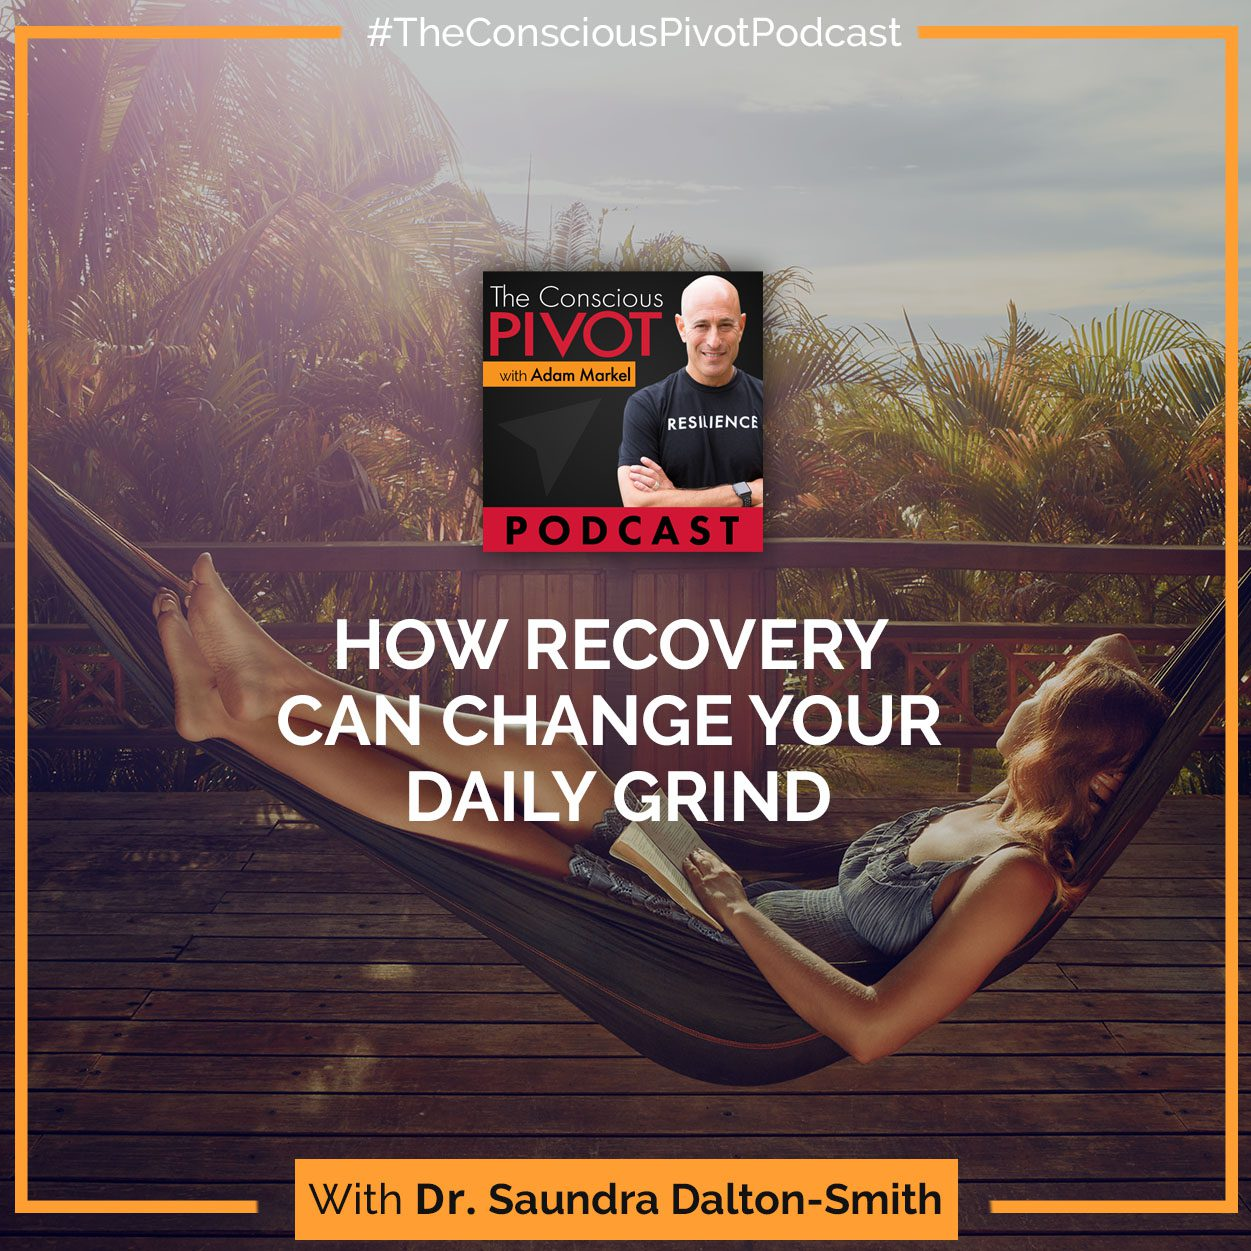 Dr. Saundra Dalton-Smith On How Taking A Rest Can Change Your Daily Grind